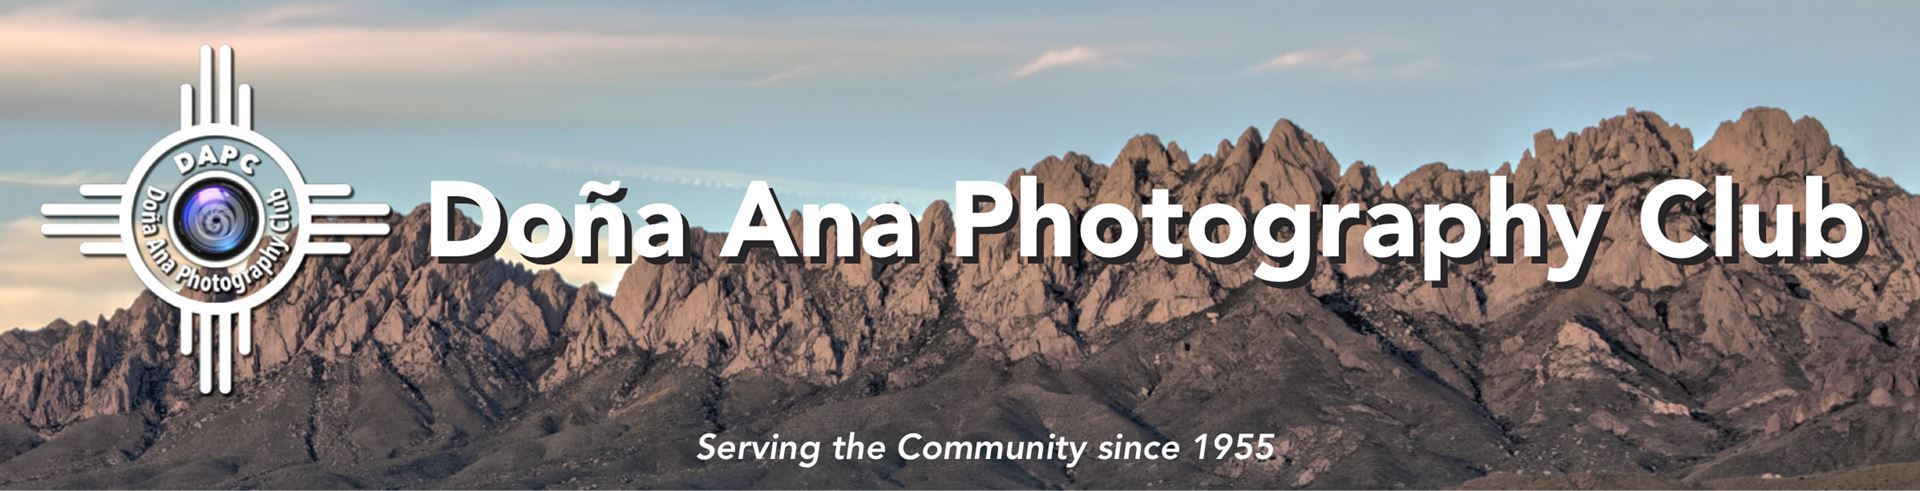 dona and photography club, dona ana photography, las cruces photography, las cruces photography club